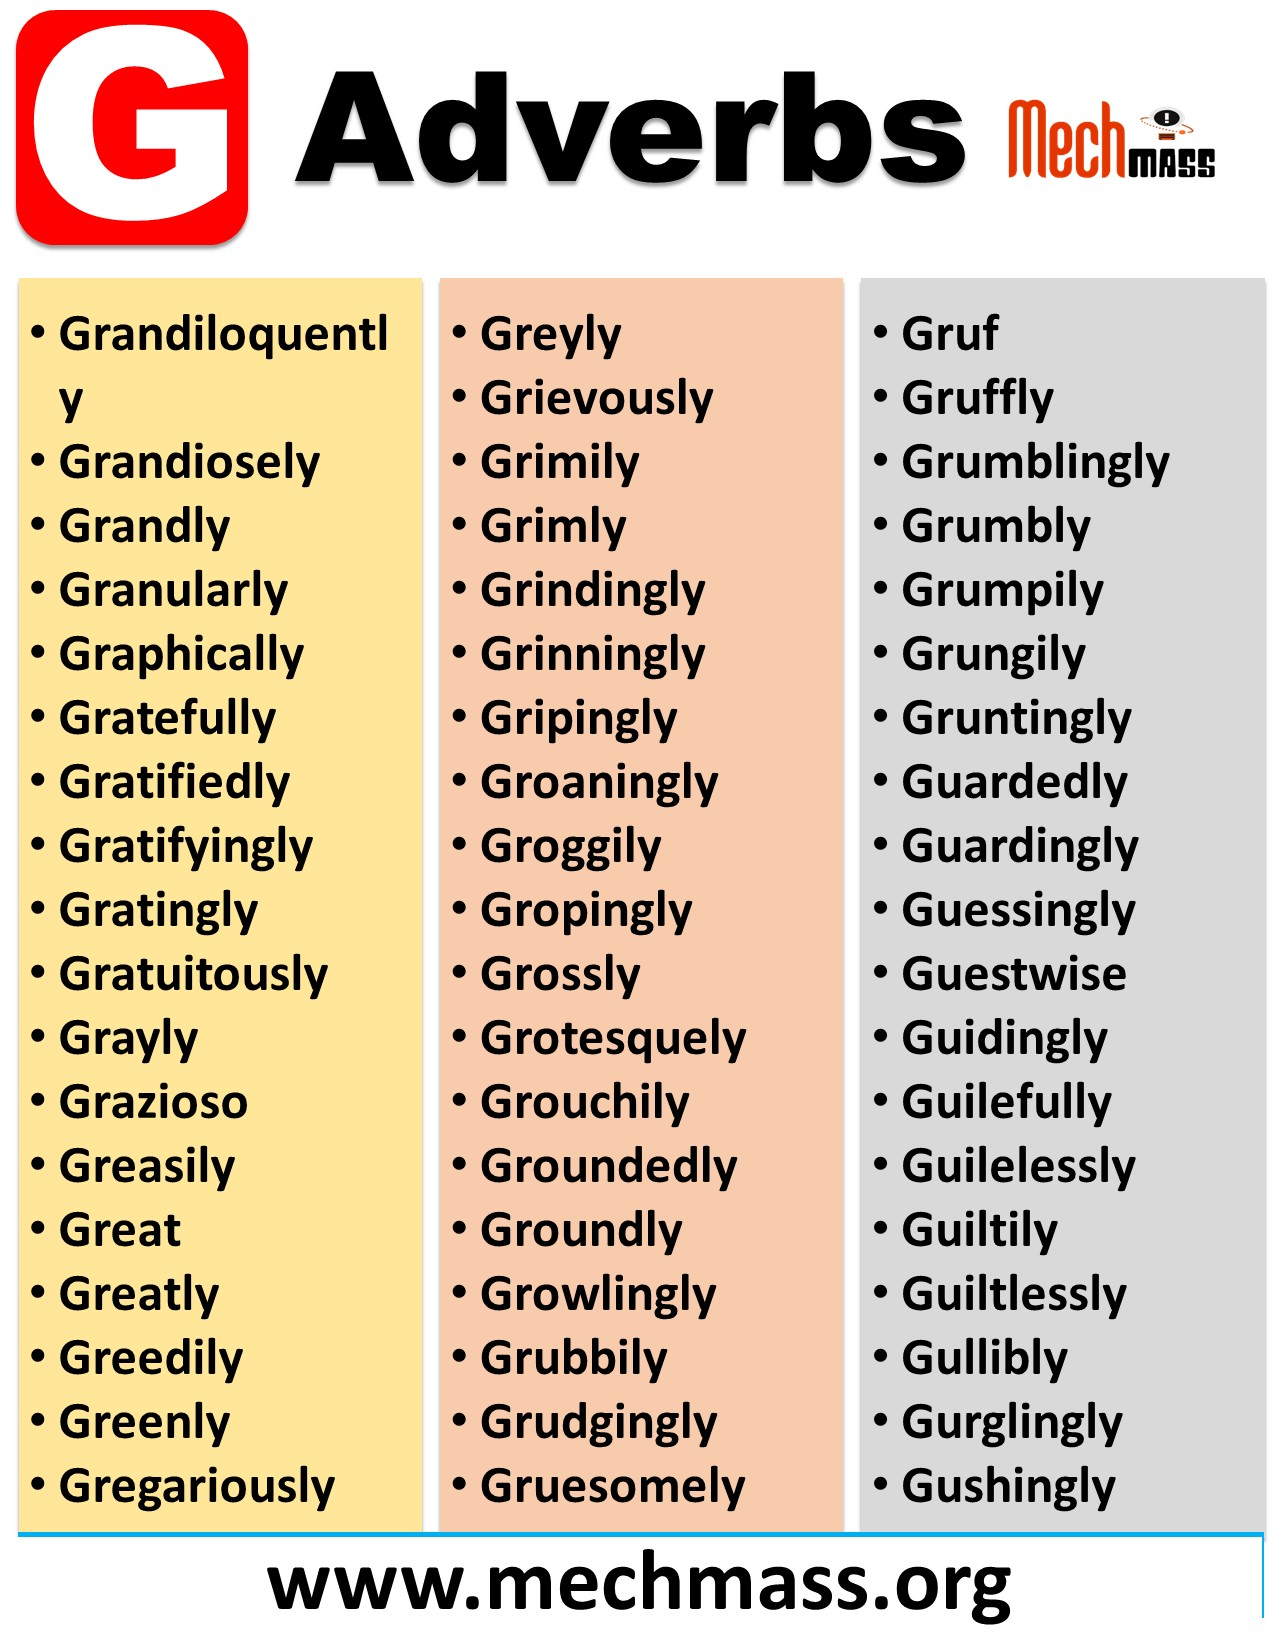 adverbs that start with letter g